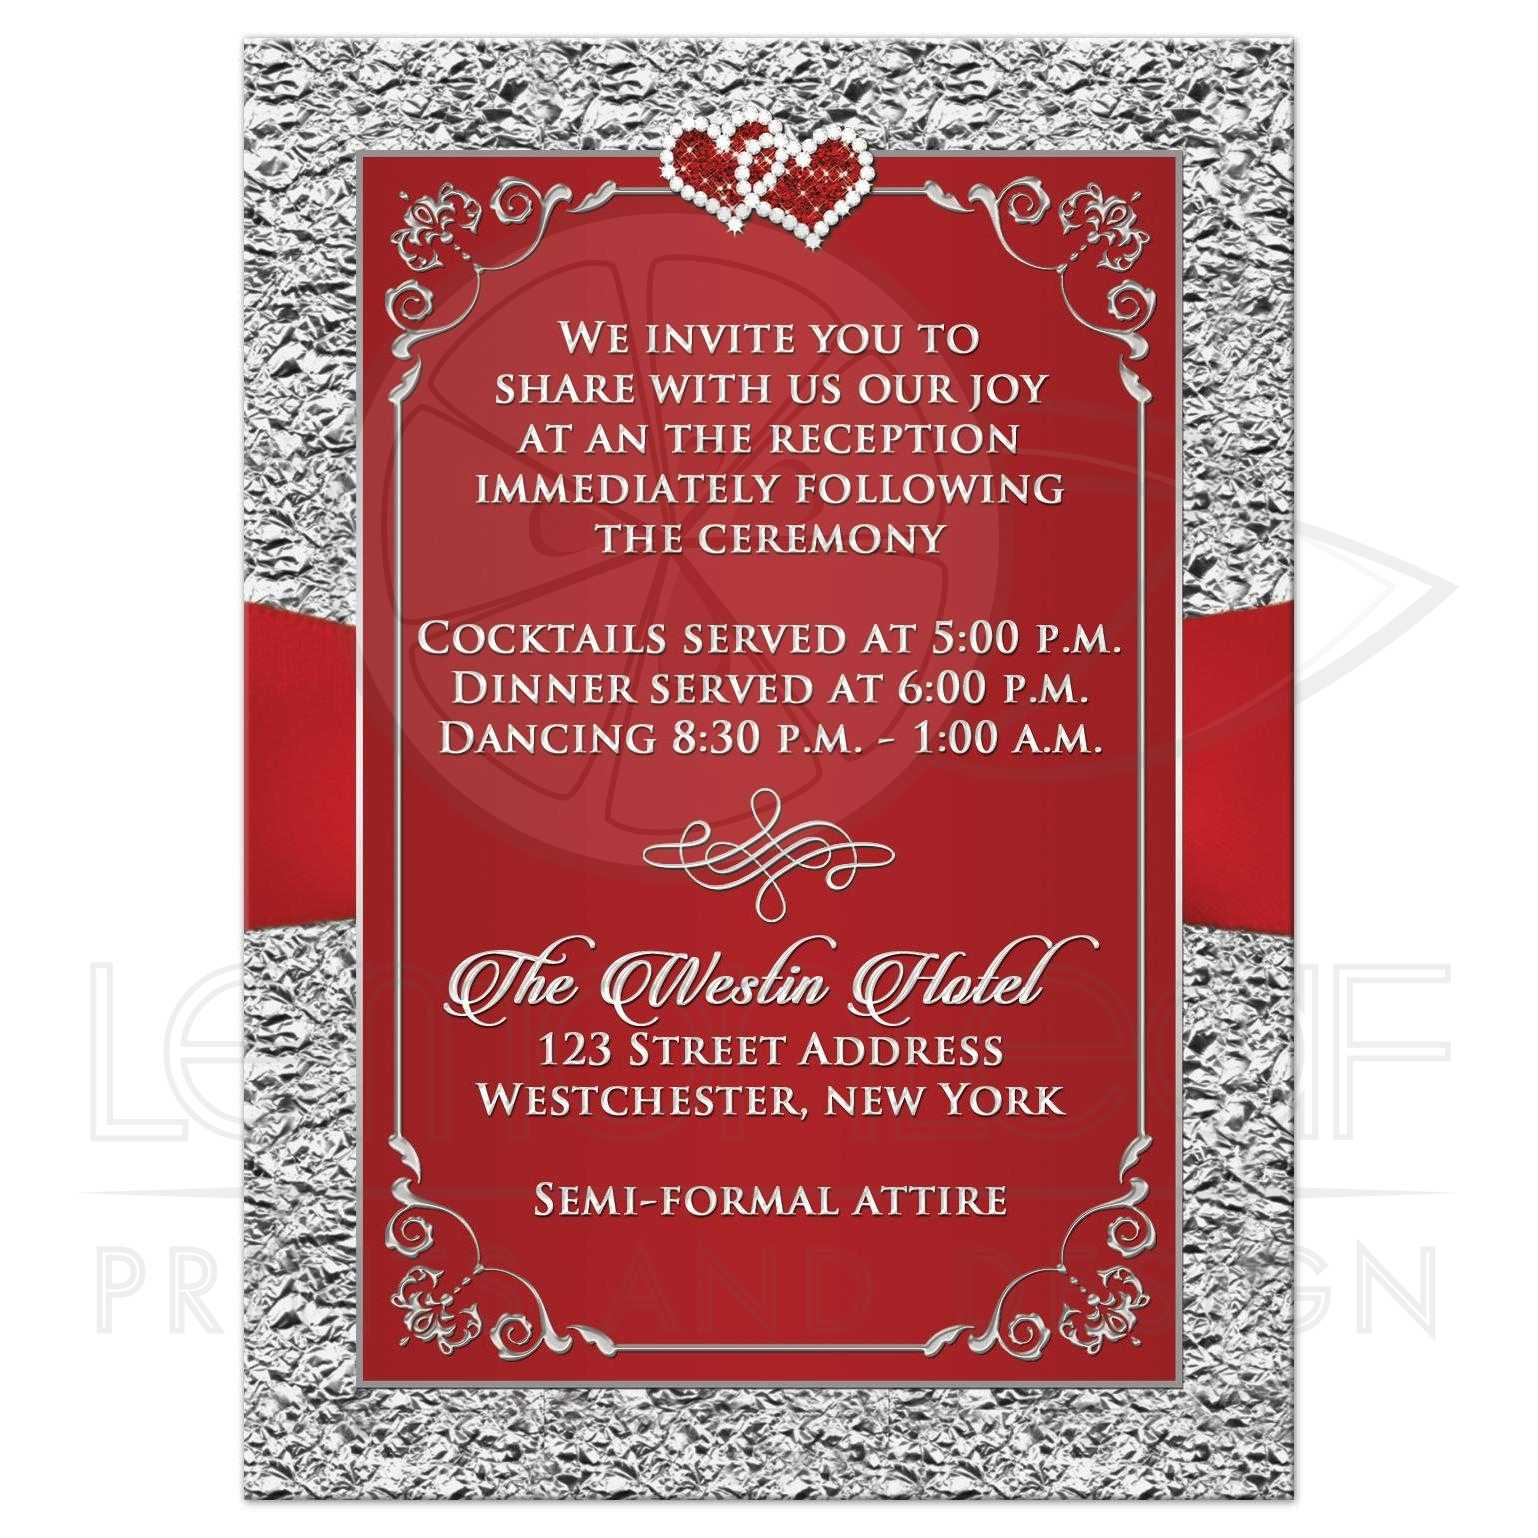 Wedding Enclosure Card | Black, Red, Silver Floral | Joined Hearts ...